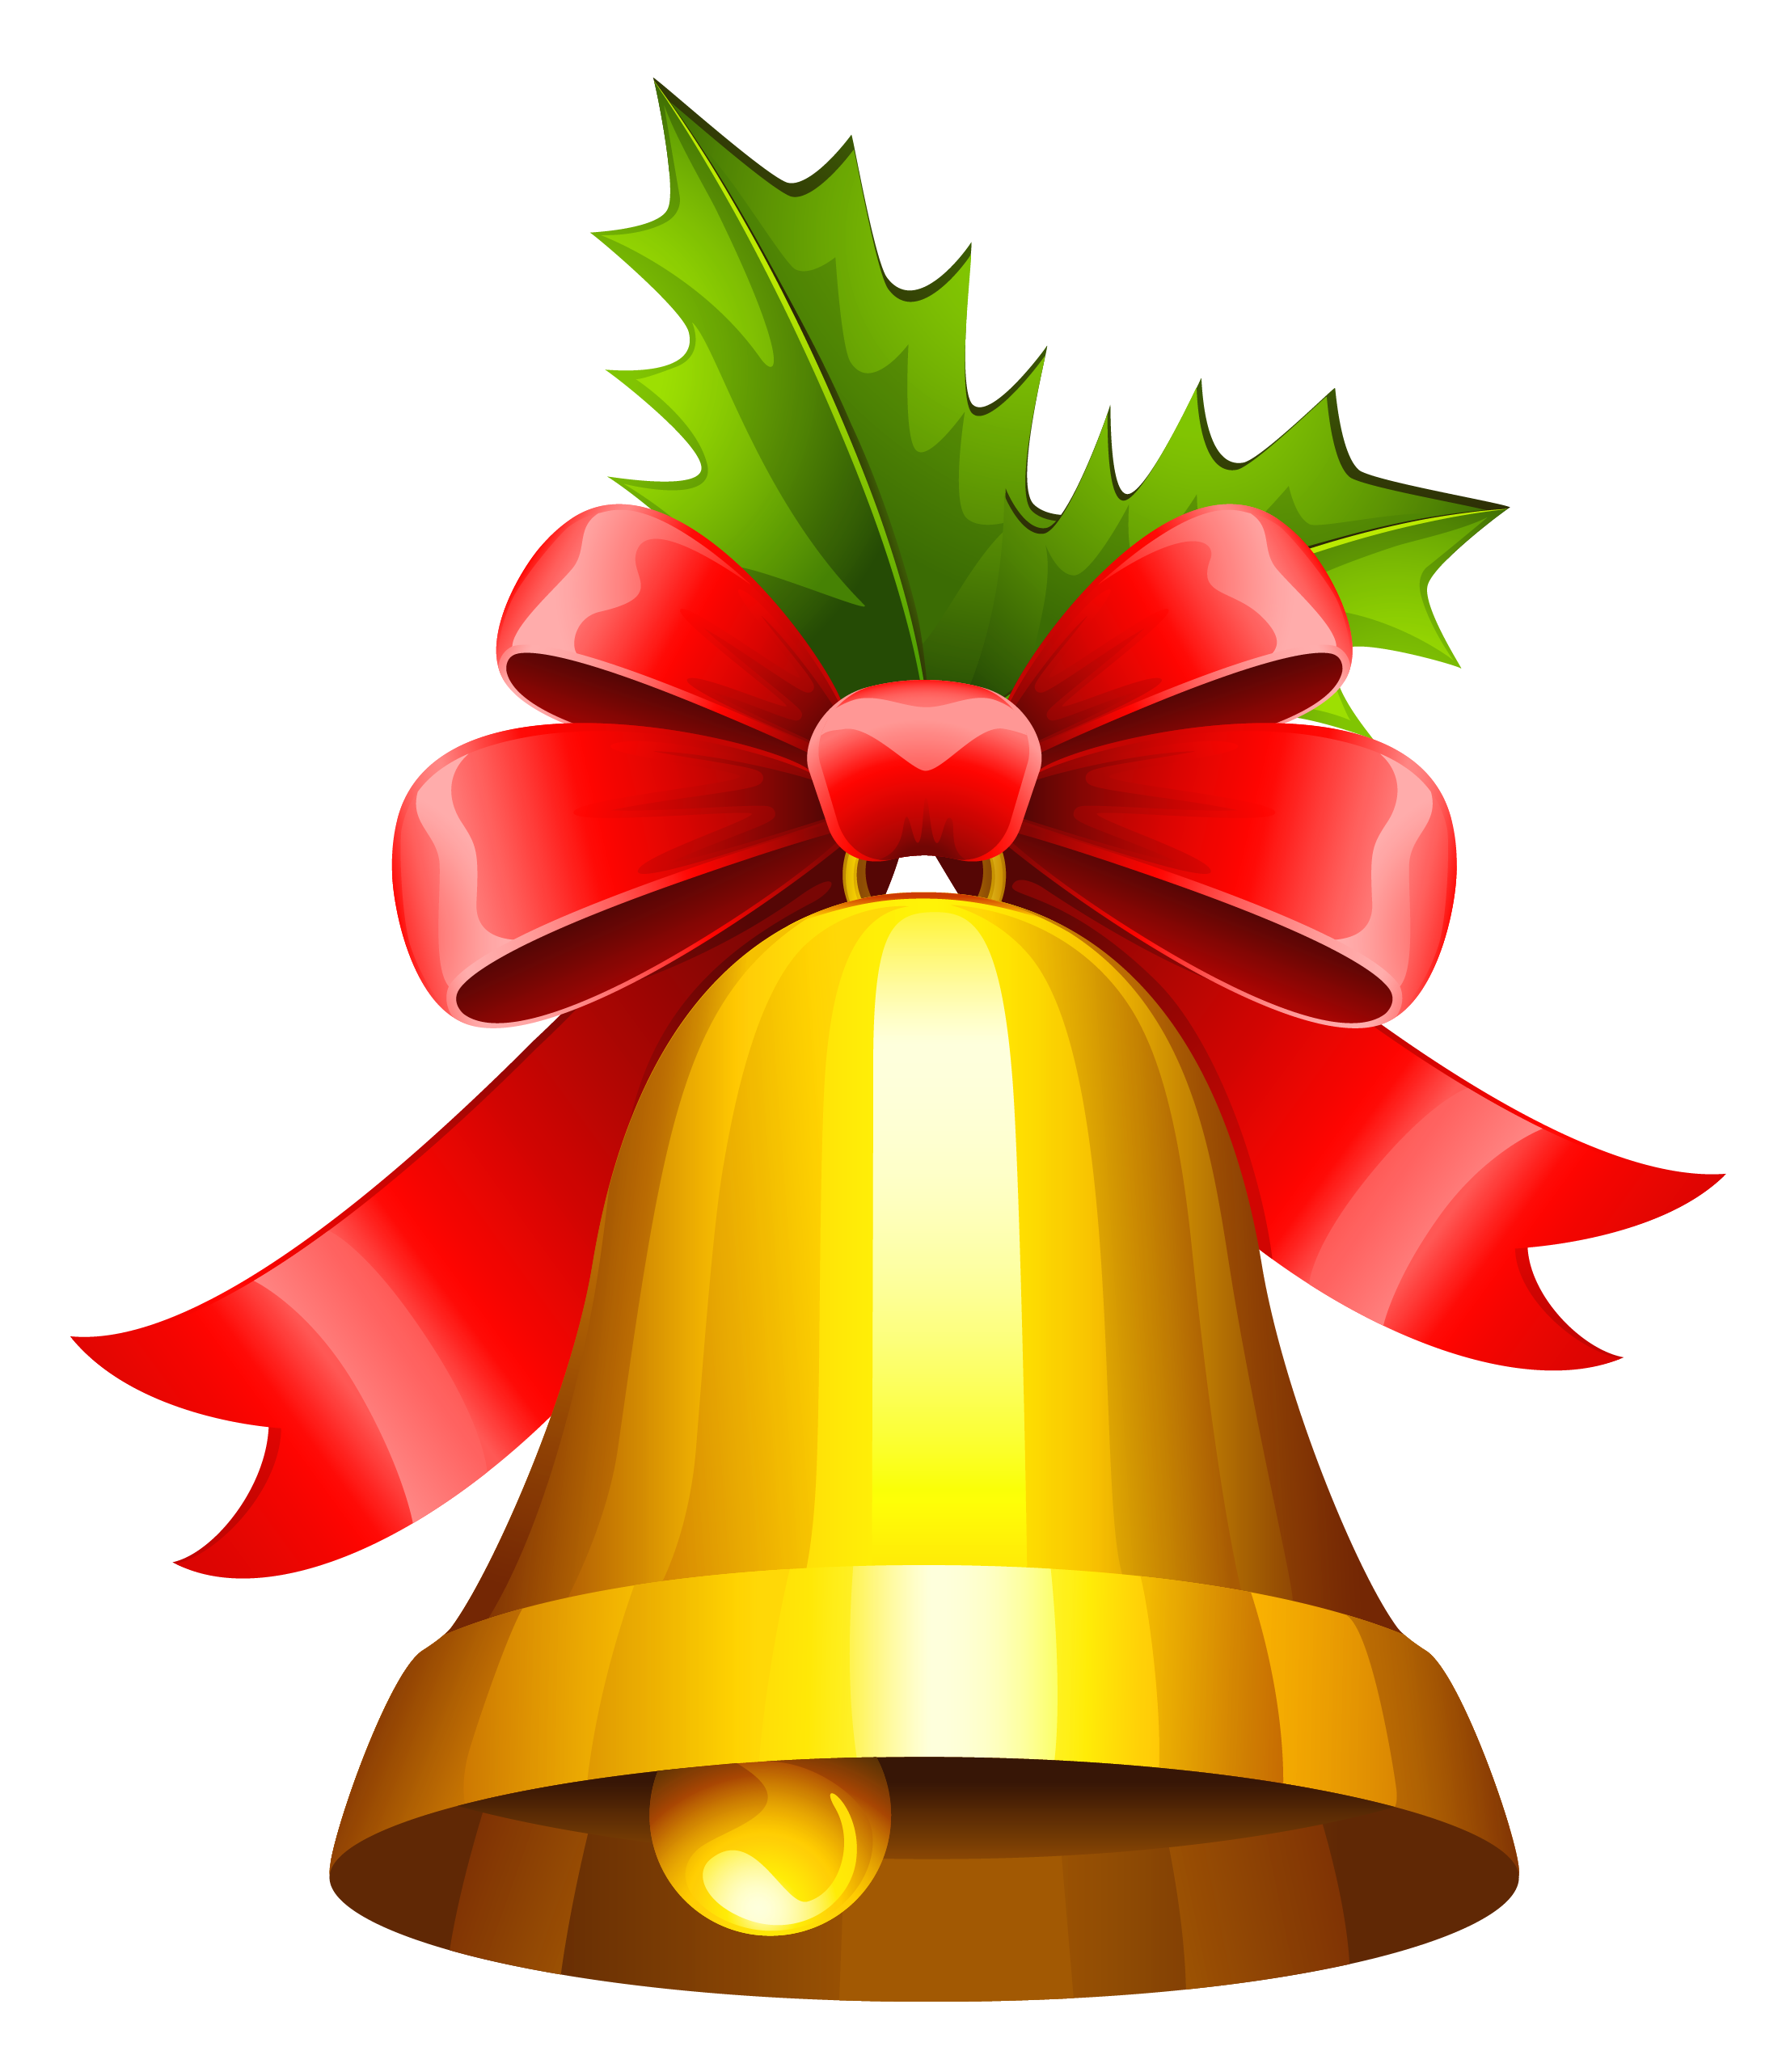 Bell PNG image - Bell HD PNG